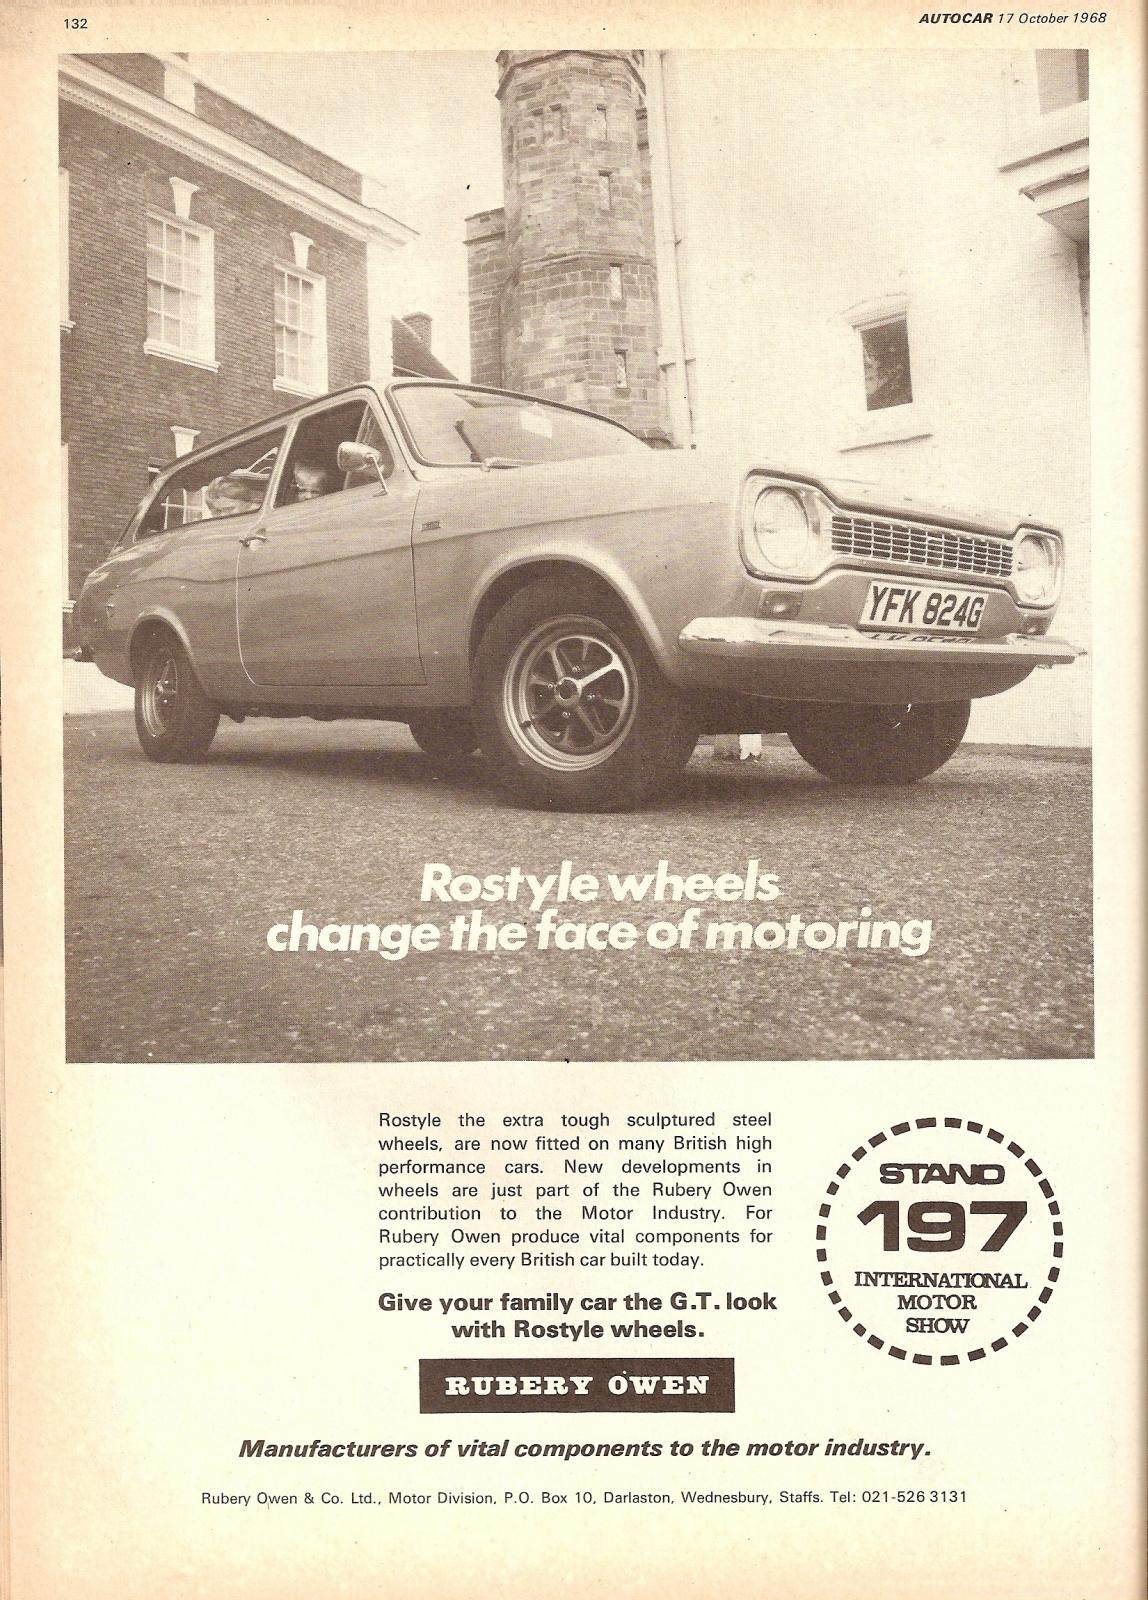 Rubery Owen Rostyle Wheels Advert 1968.jpg